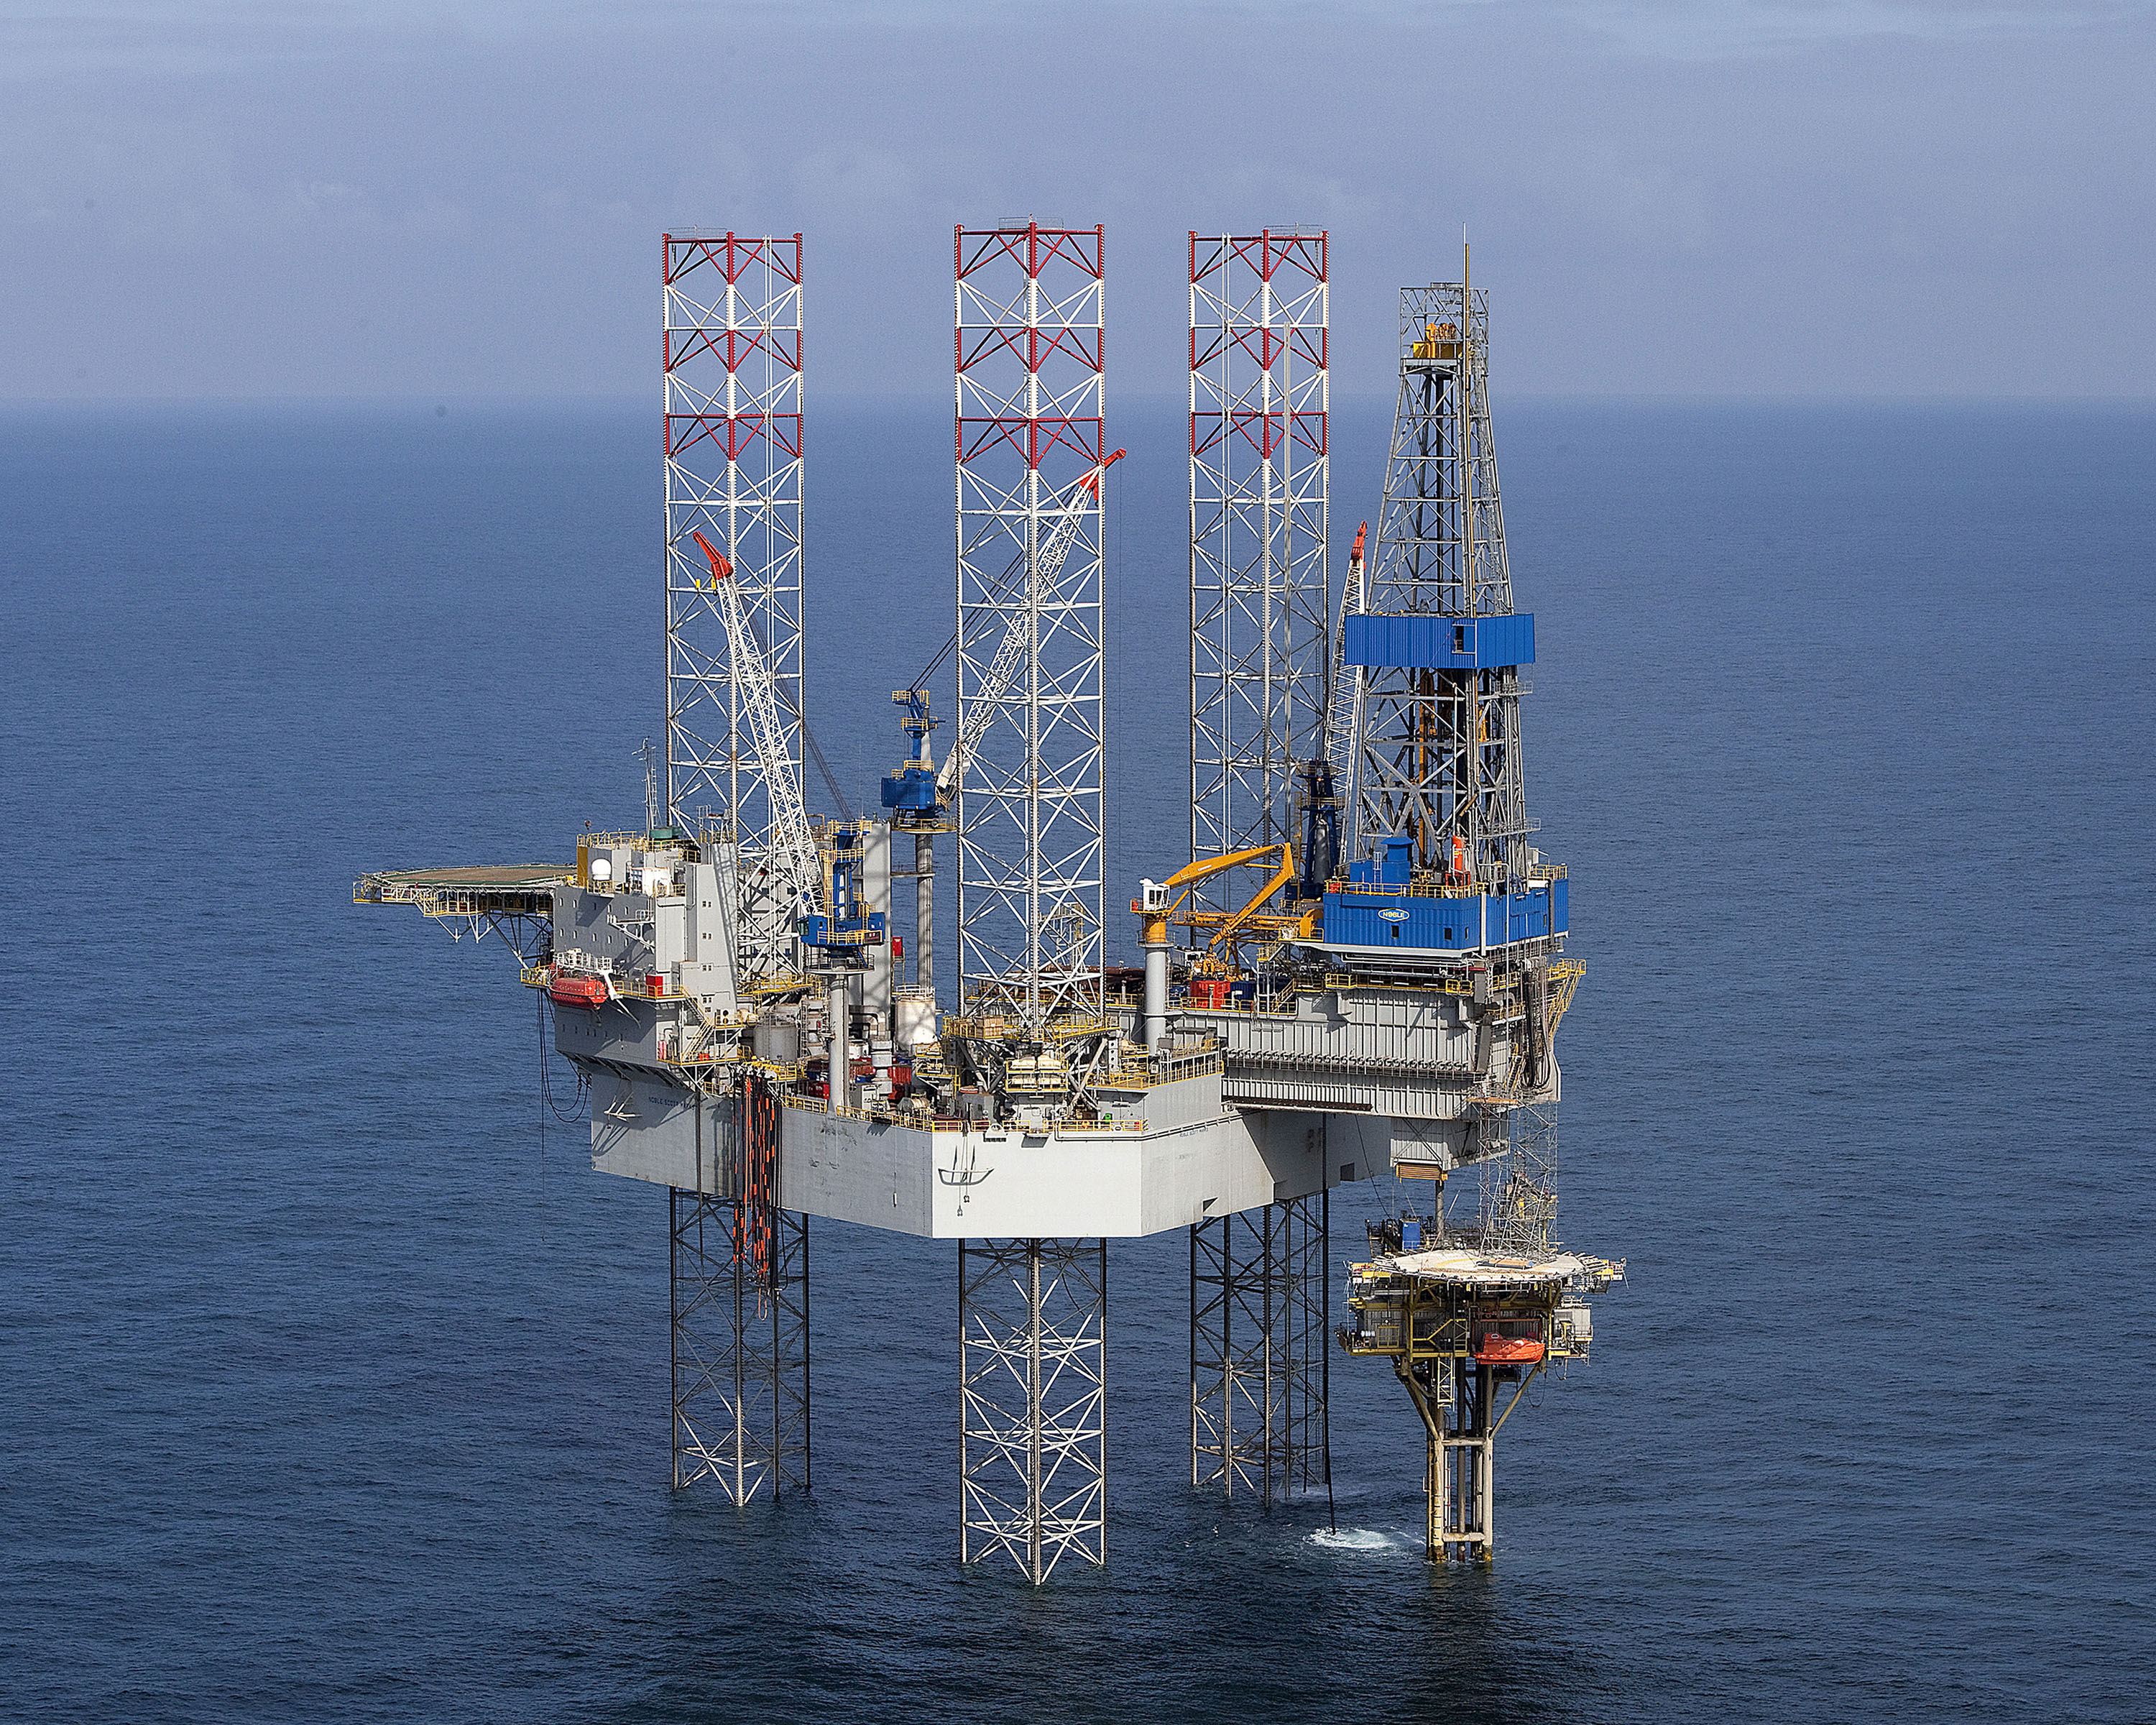 Dayrates are down, but rig count remains steady in Middle East